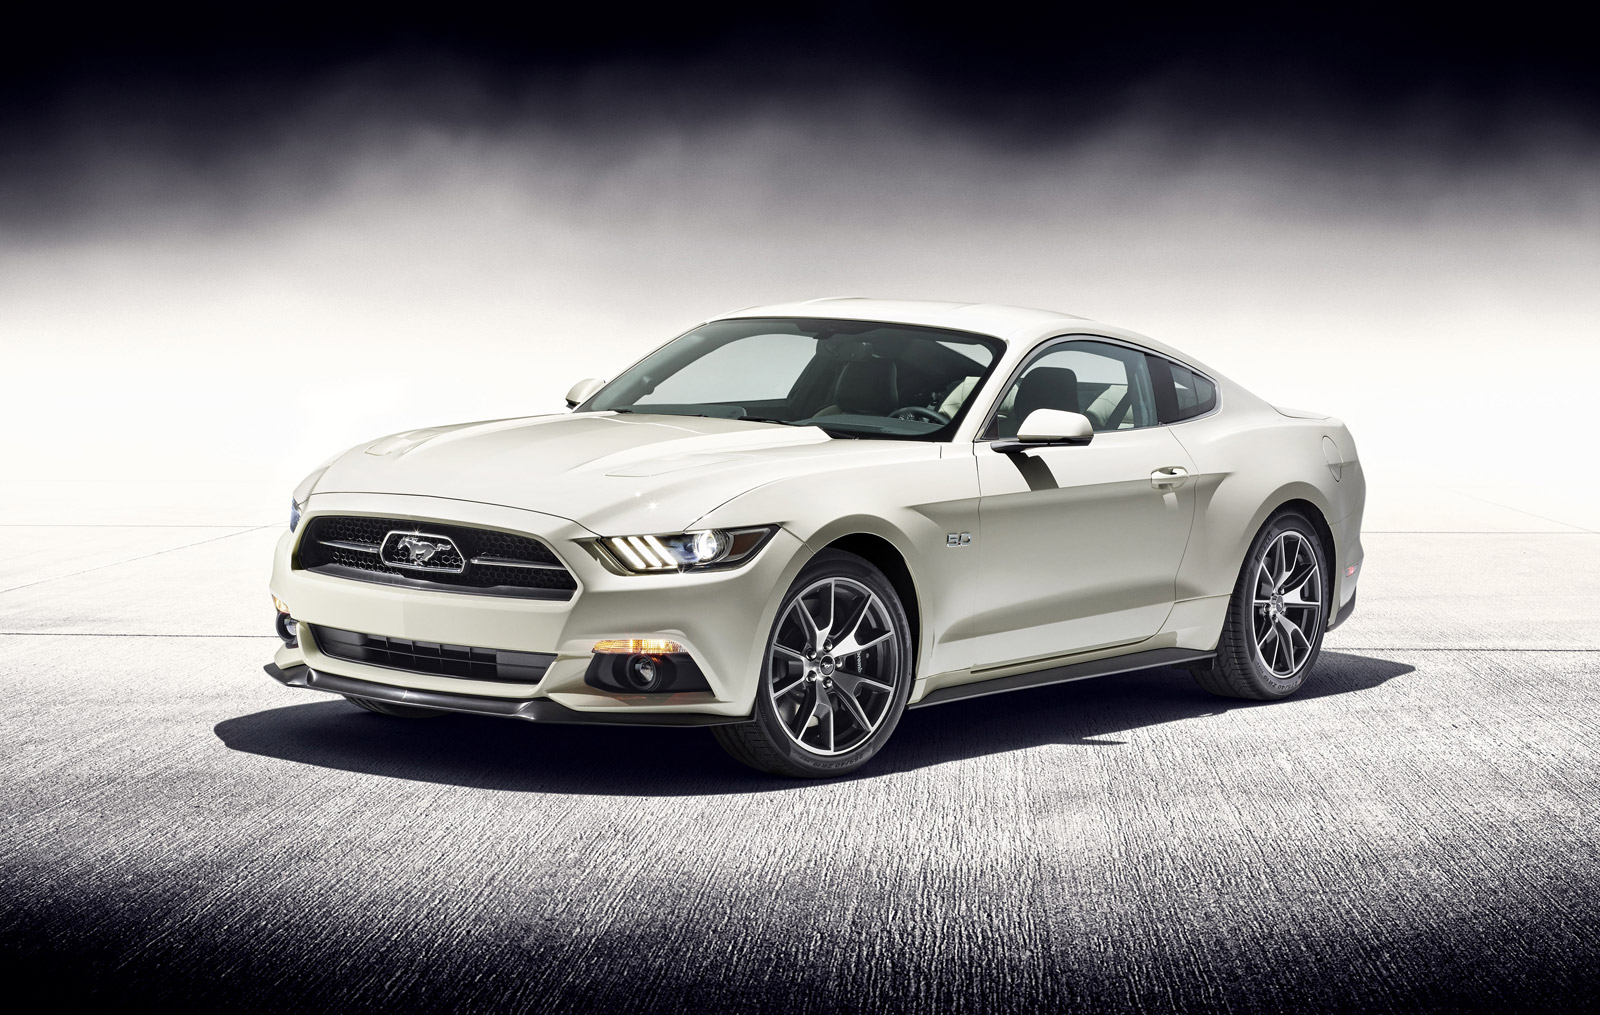 Ford Mustang Readers Pick For Best Car To Buy - Best ford car to buy